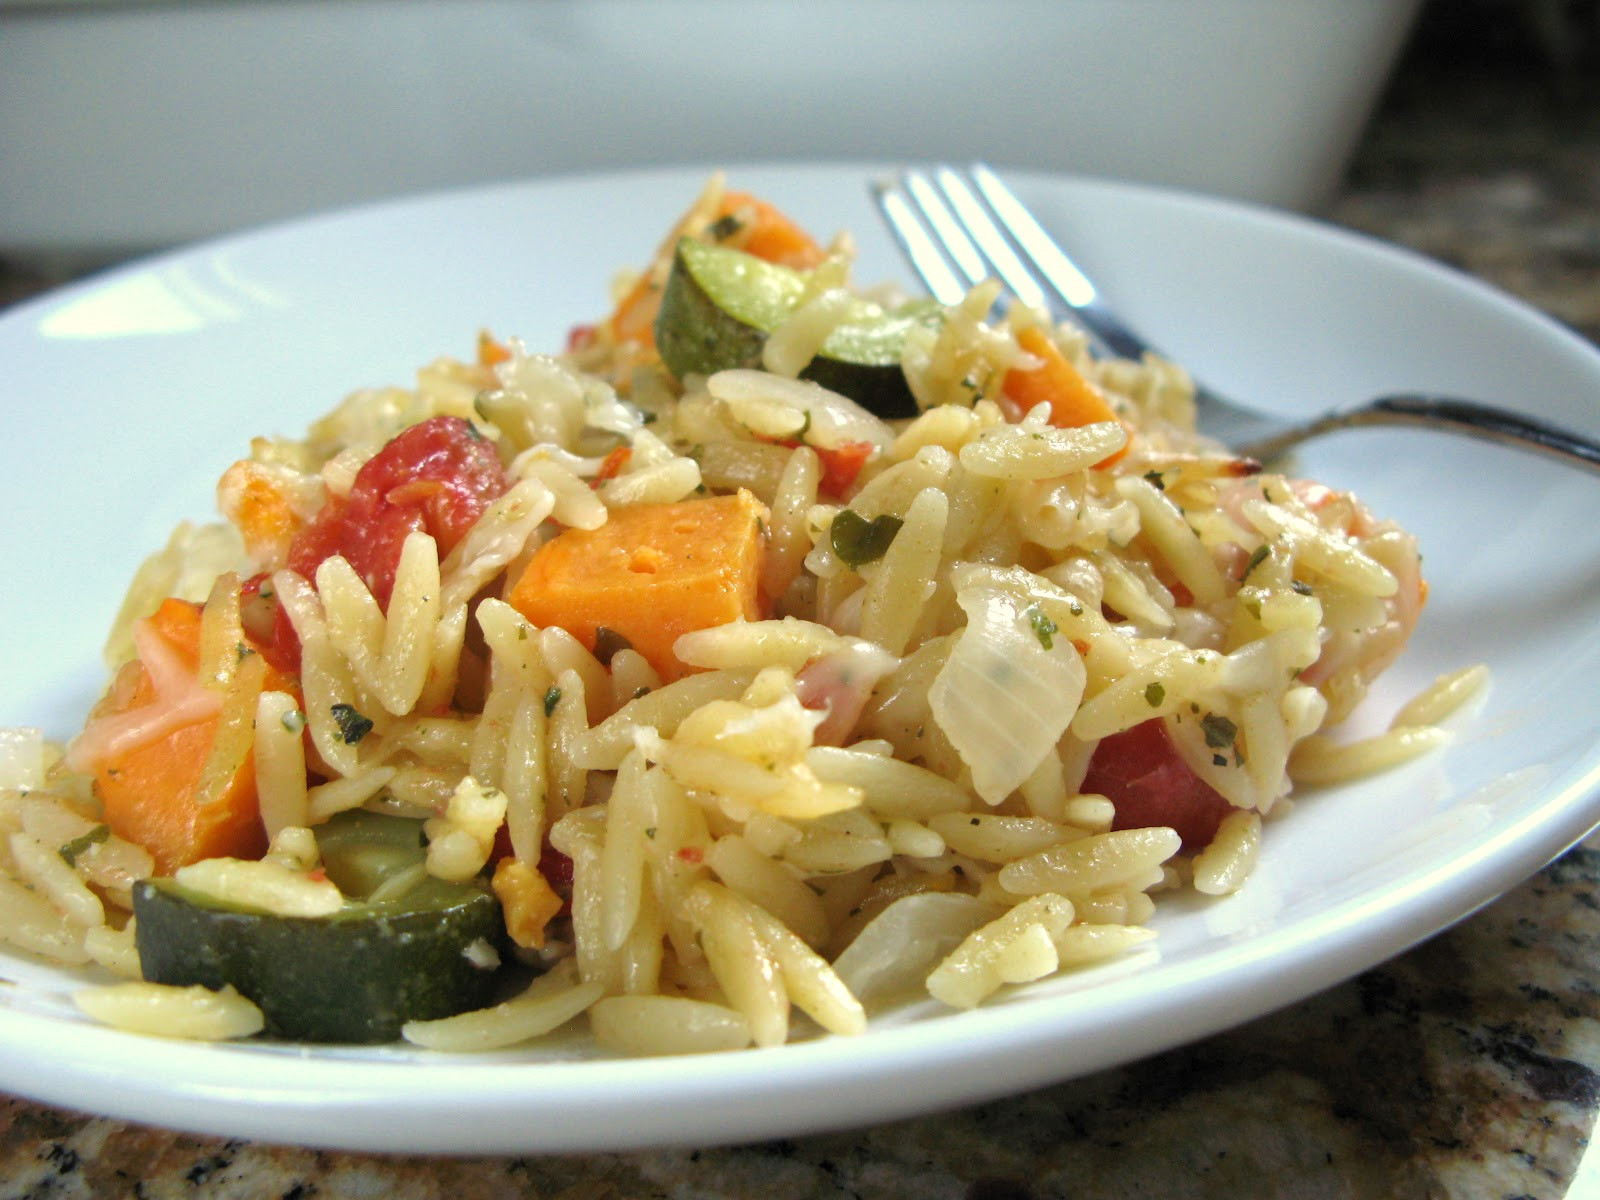 Orzo Recipes Vegetarian  The Bake f Flunkie Orzo with Ve ables & Parmesan Cheese